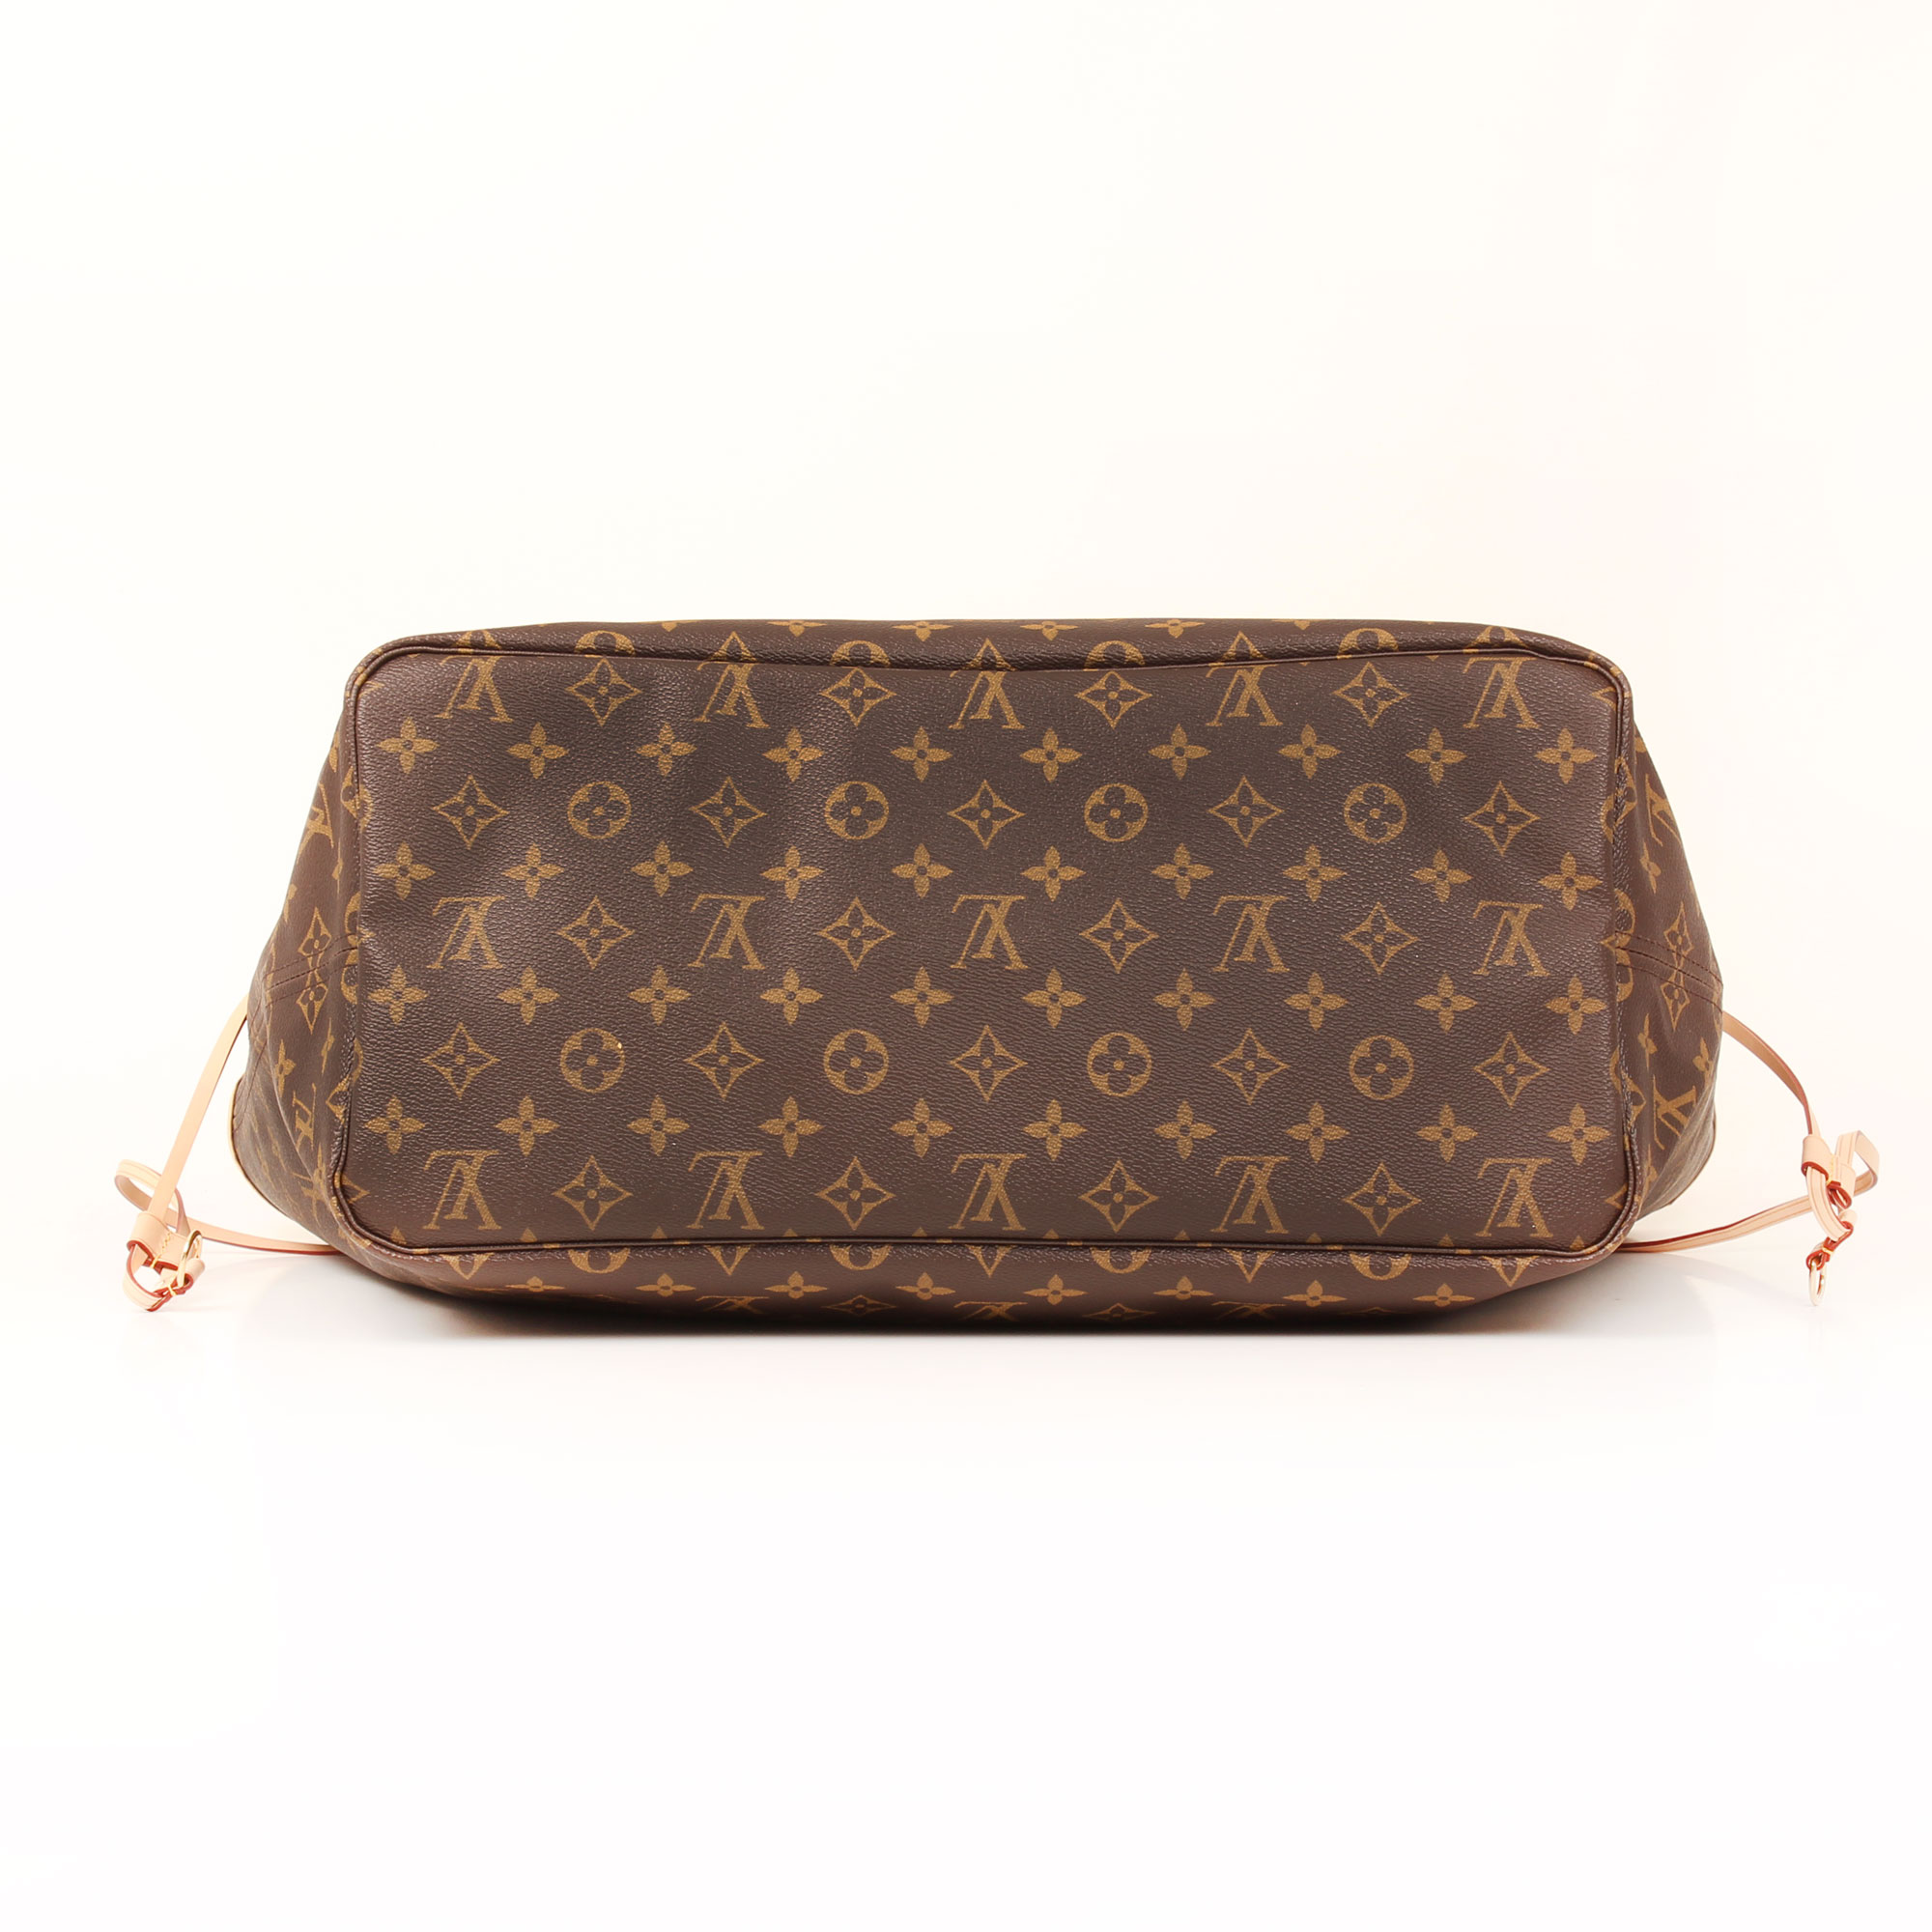 bolso-louis-vuitton-neverfull-gm-monogram-nuevo-base